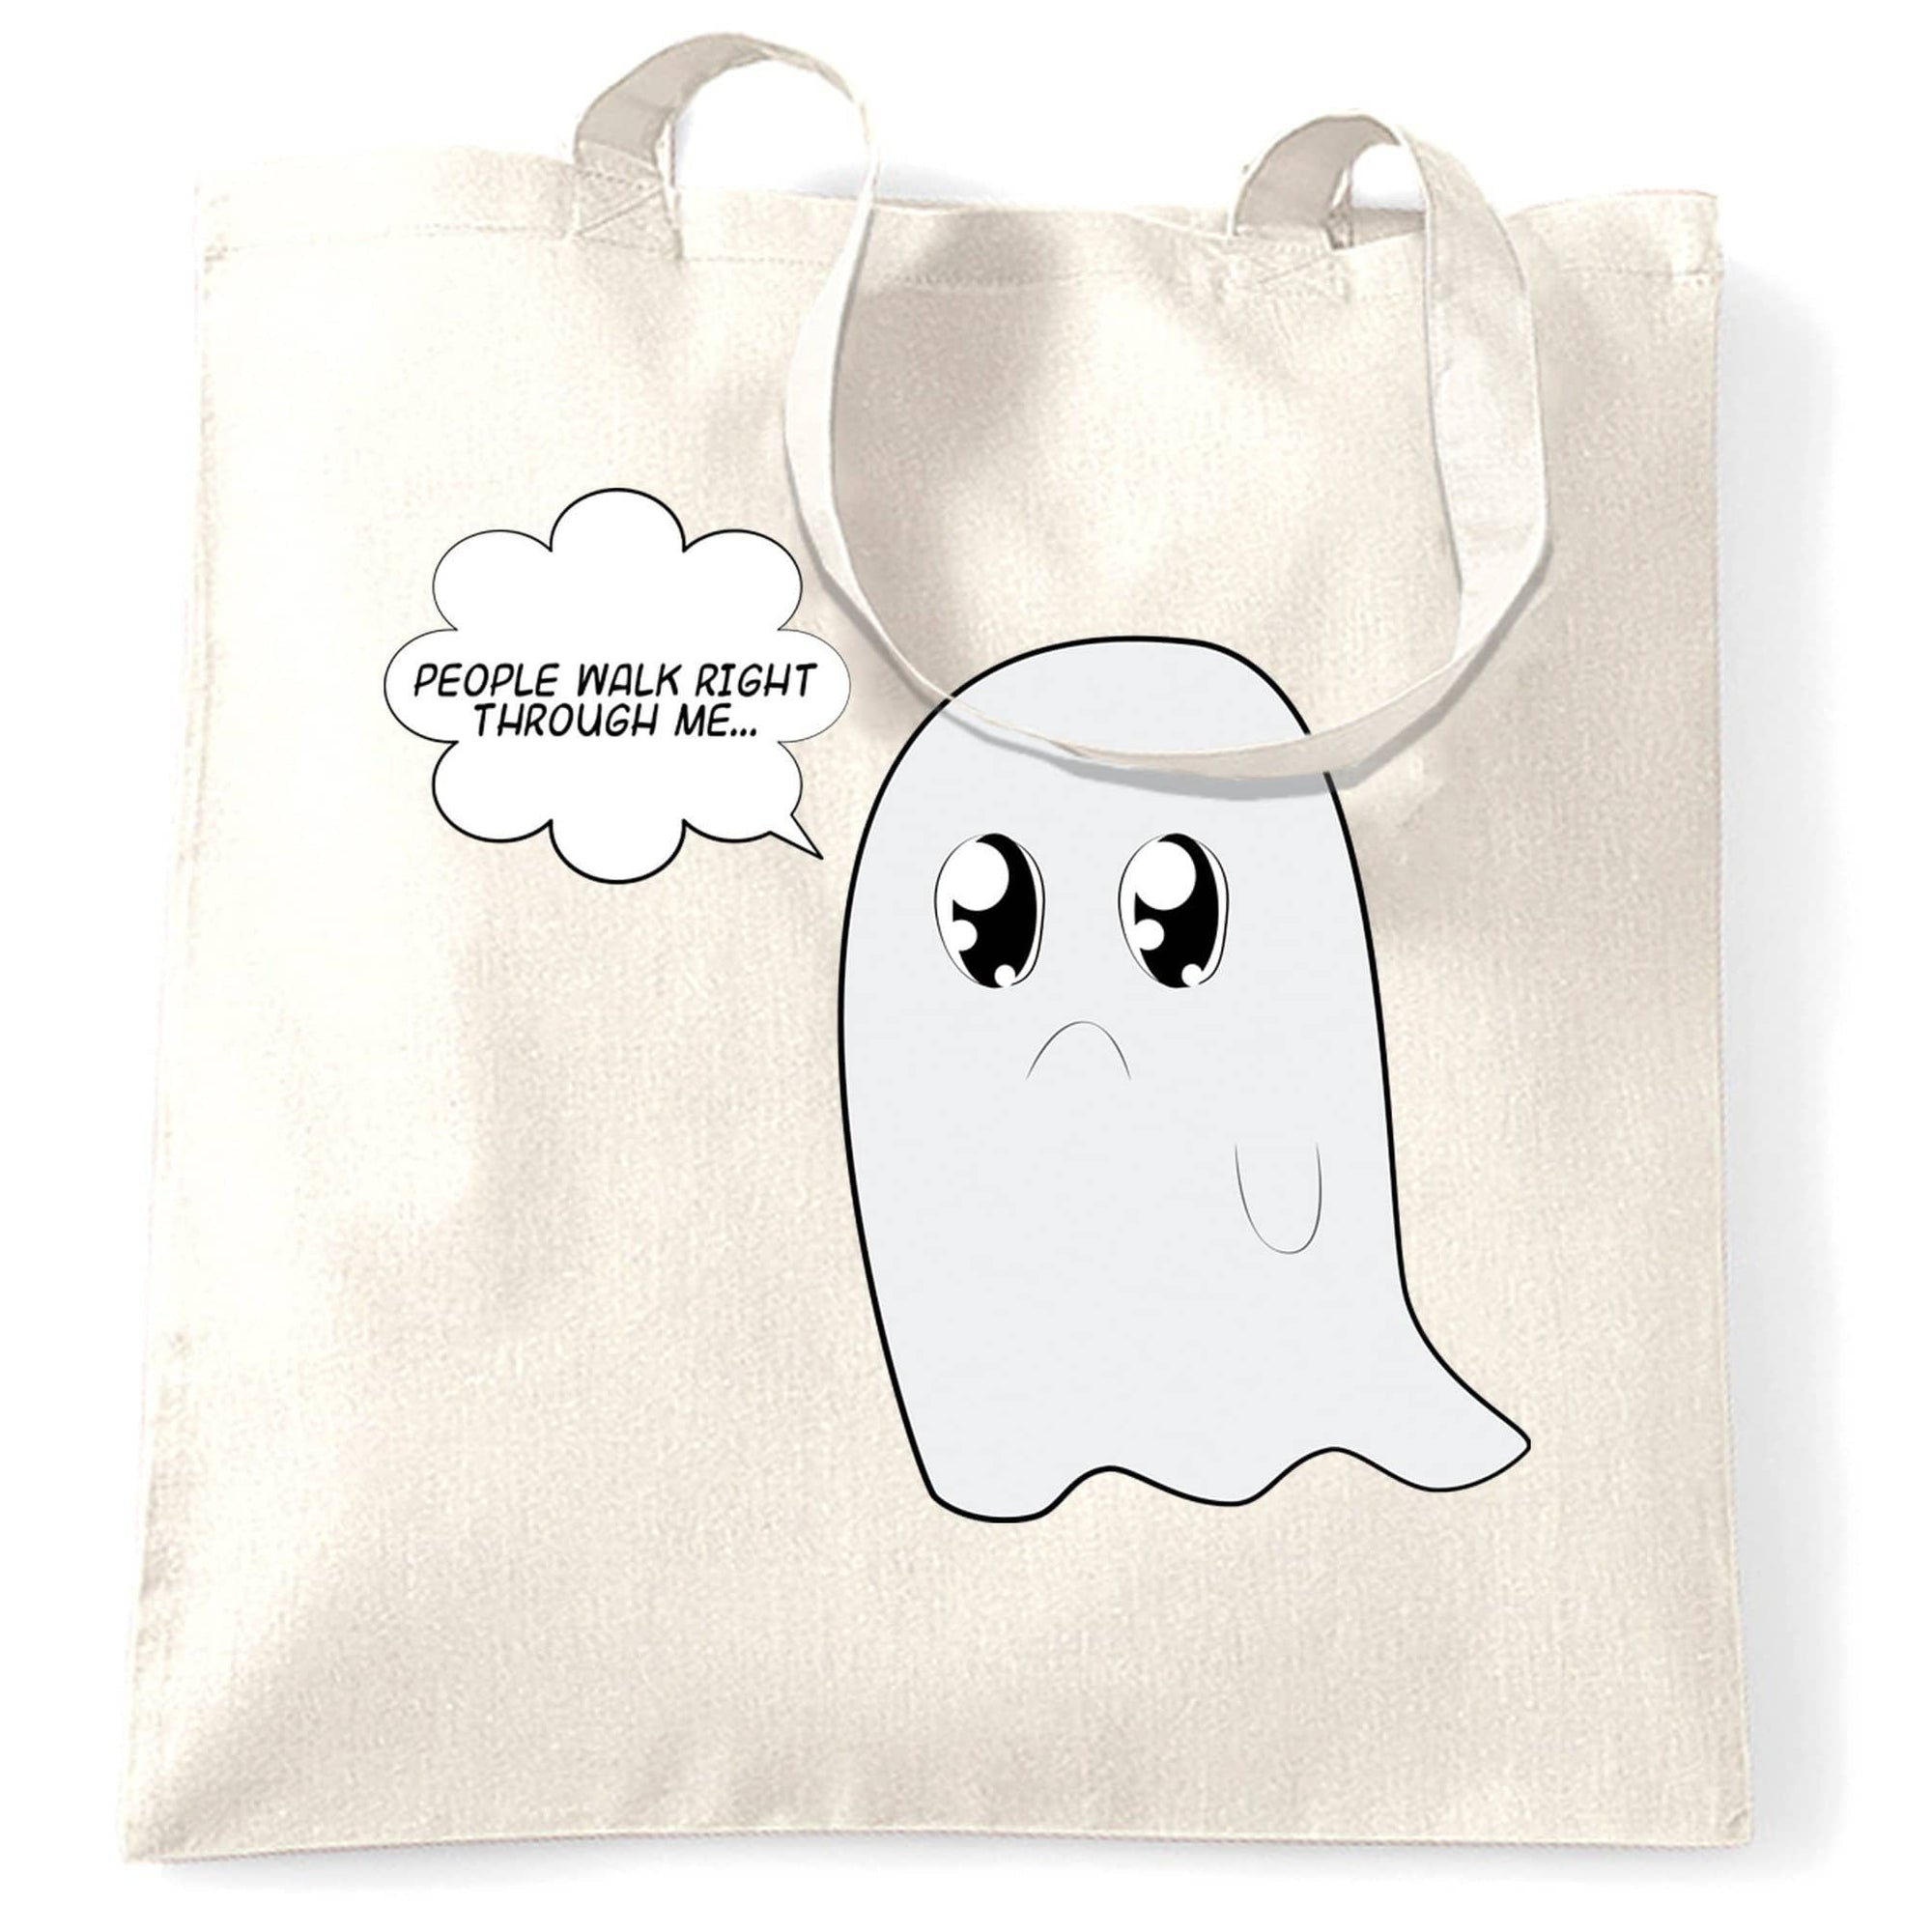 Cute Ghost Tote Bag People Walk Right Through Me Joke